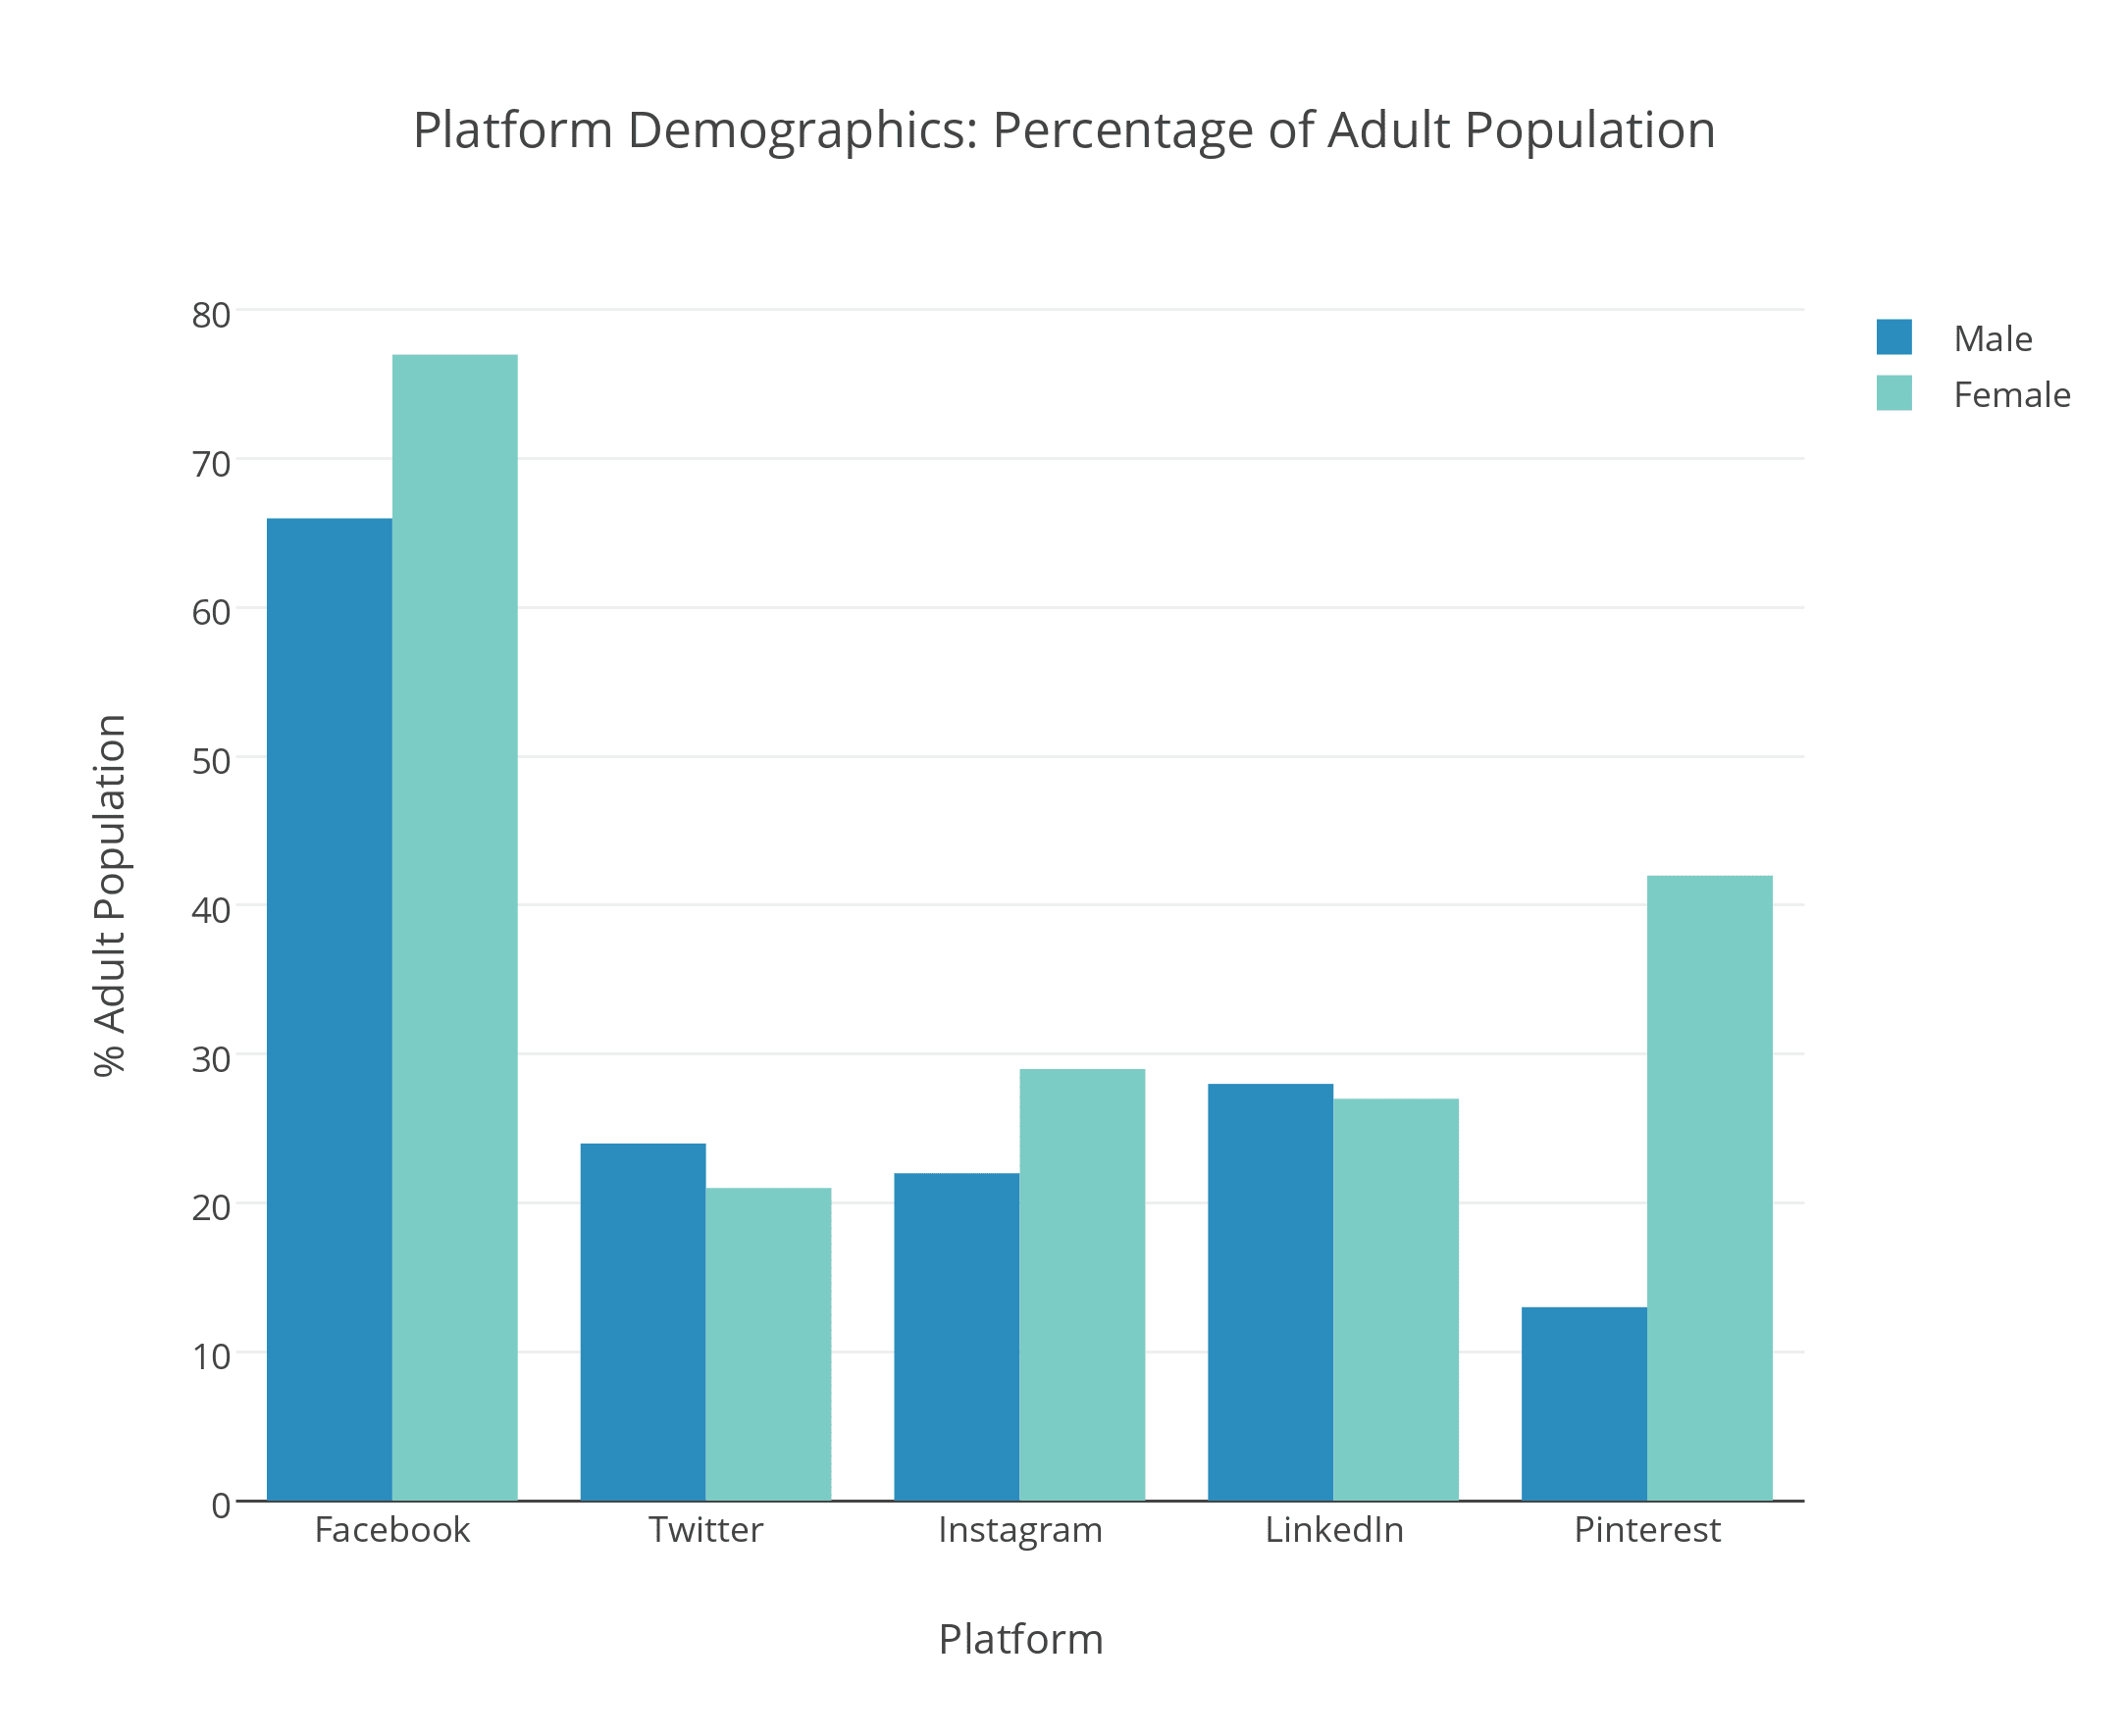 Platform Demographics Percentage of Adult Population